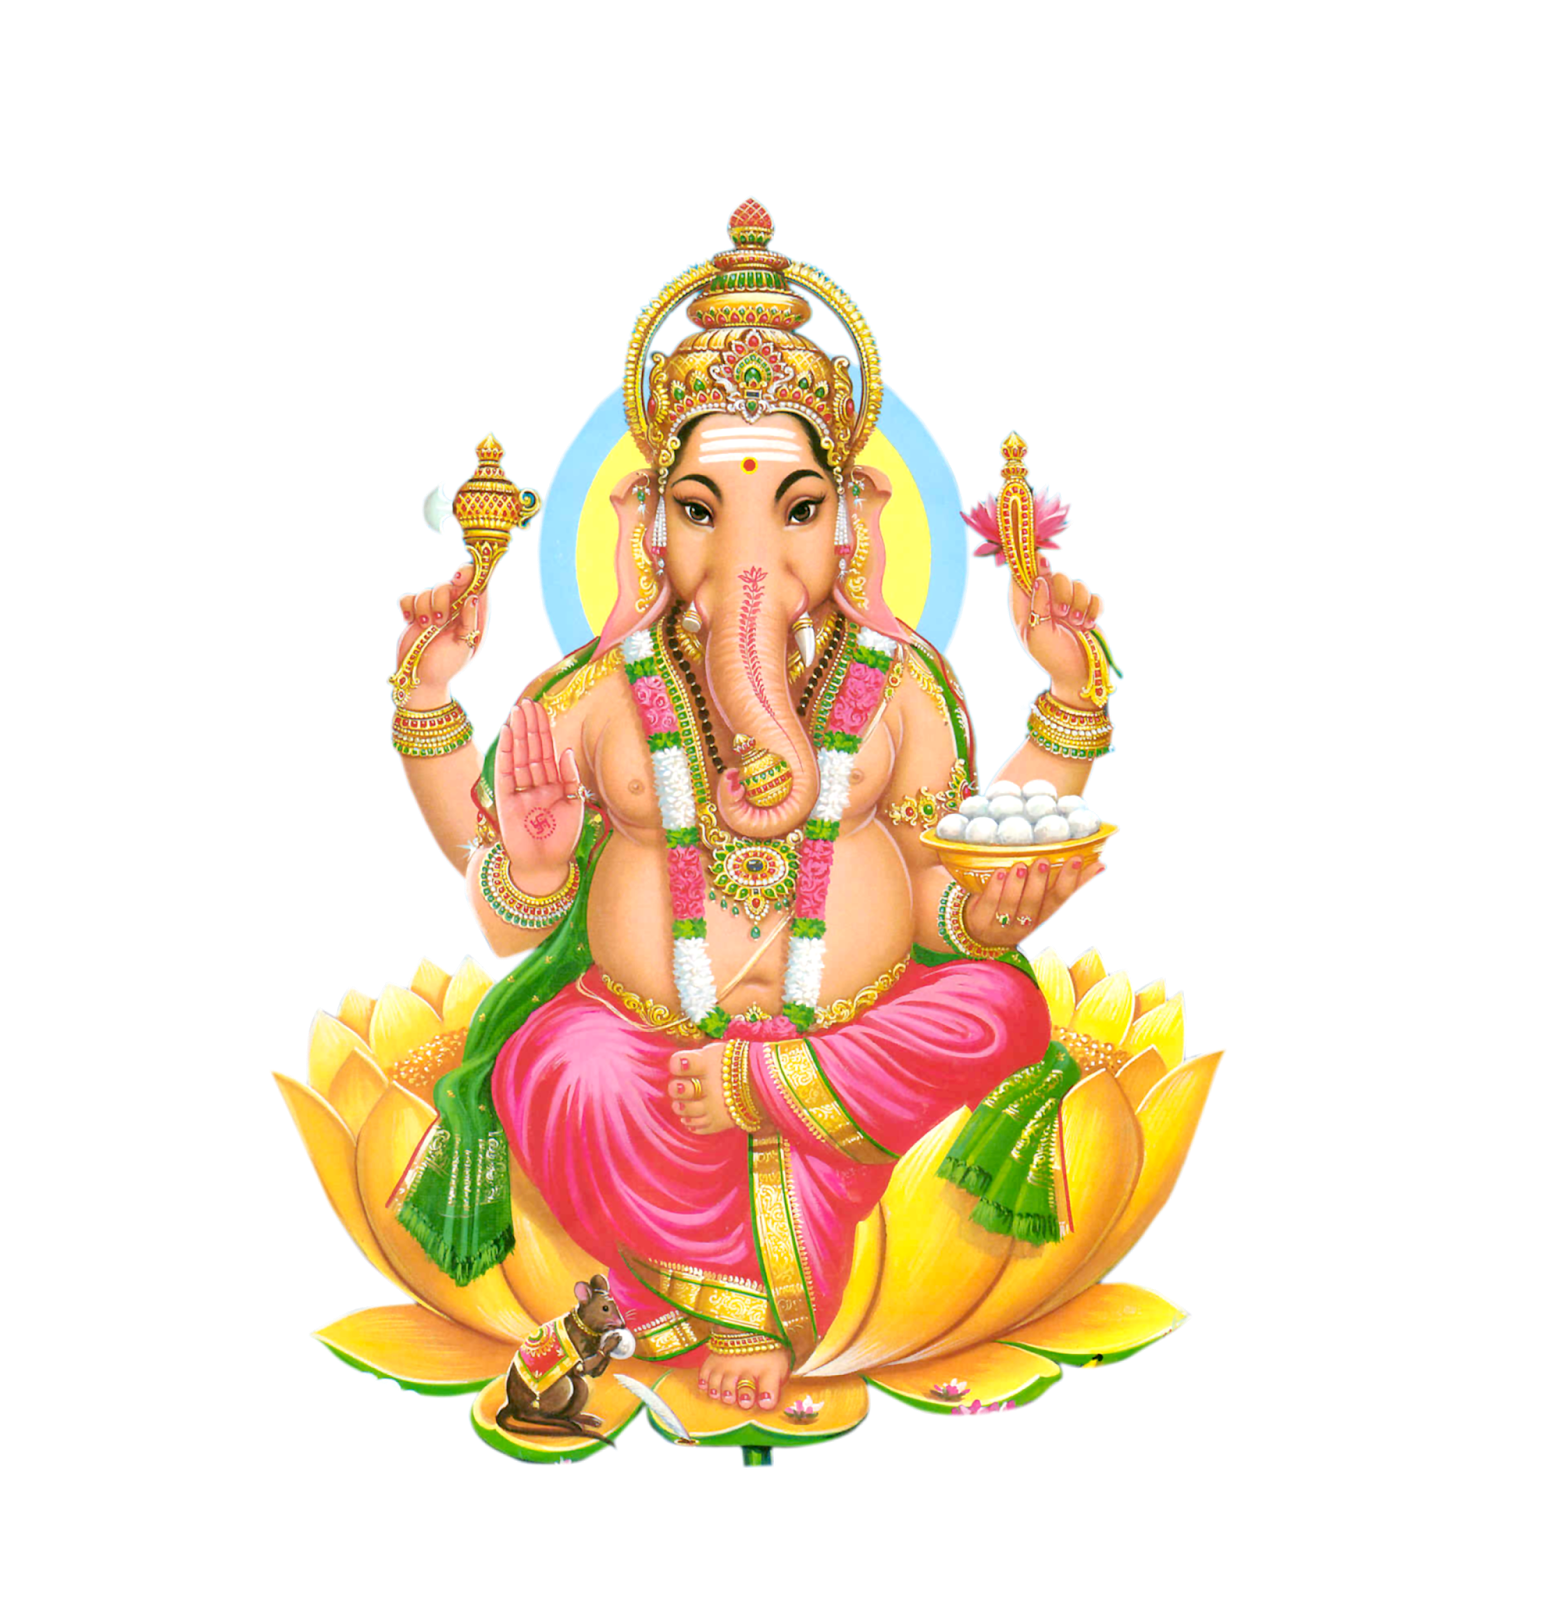 Lord Ganesh Png, png collections at sccpre.cat.